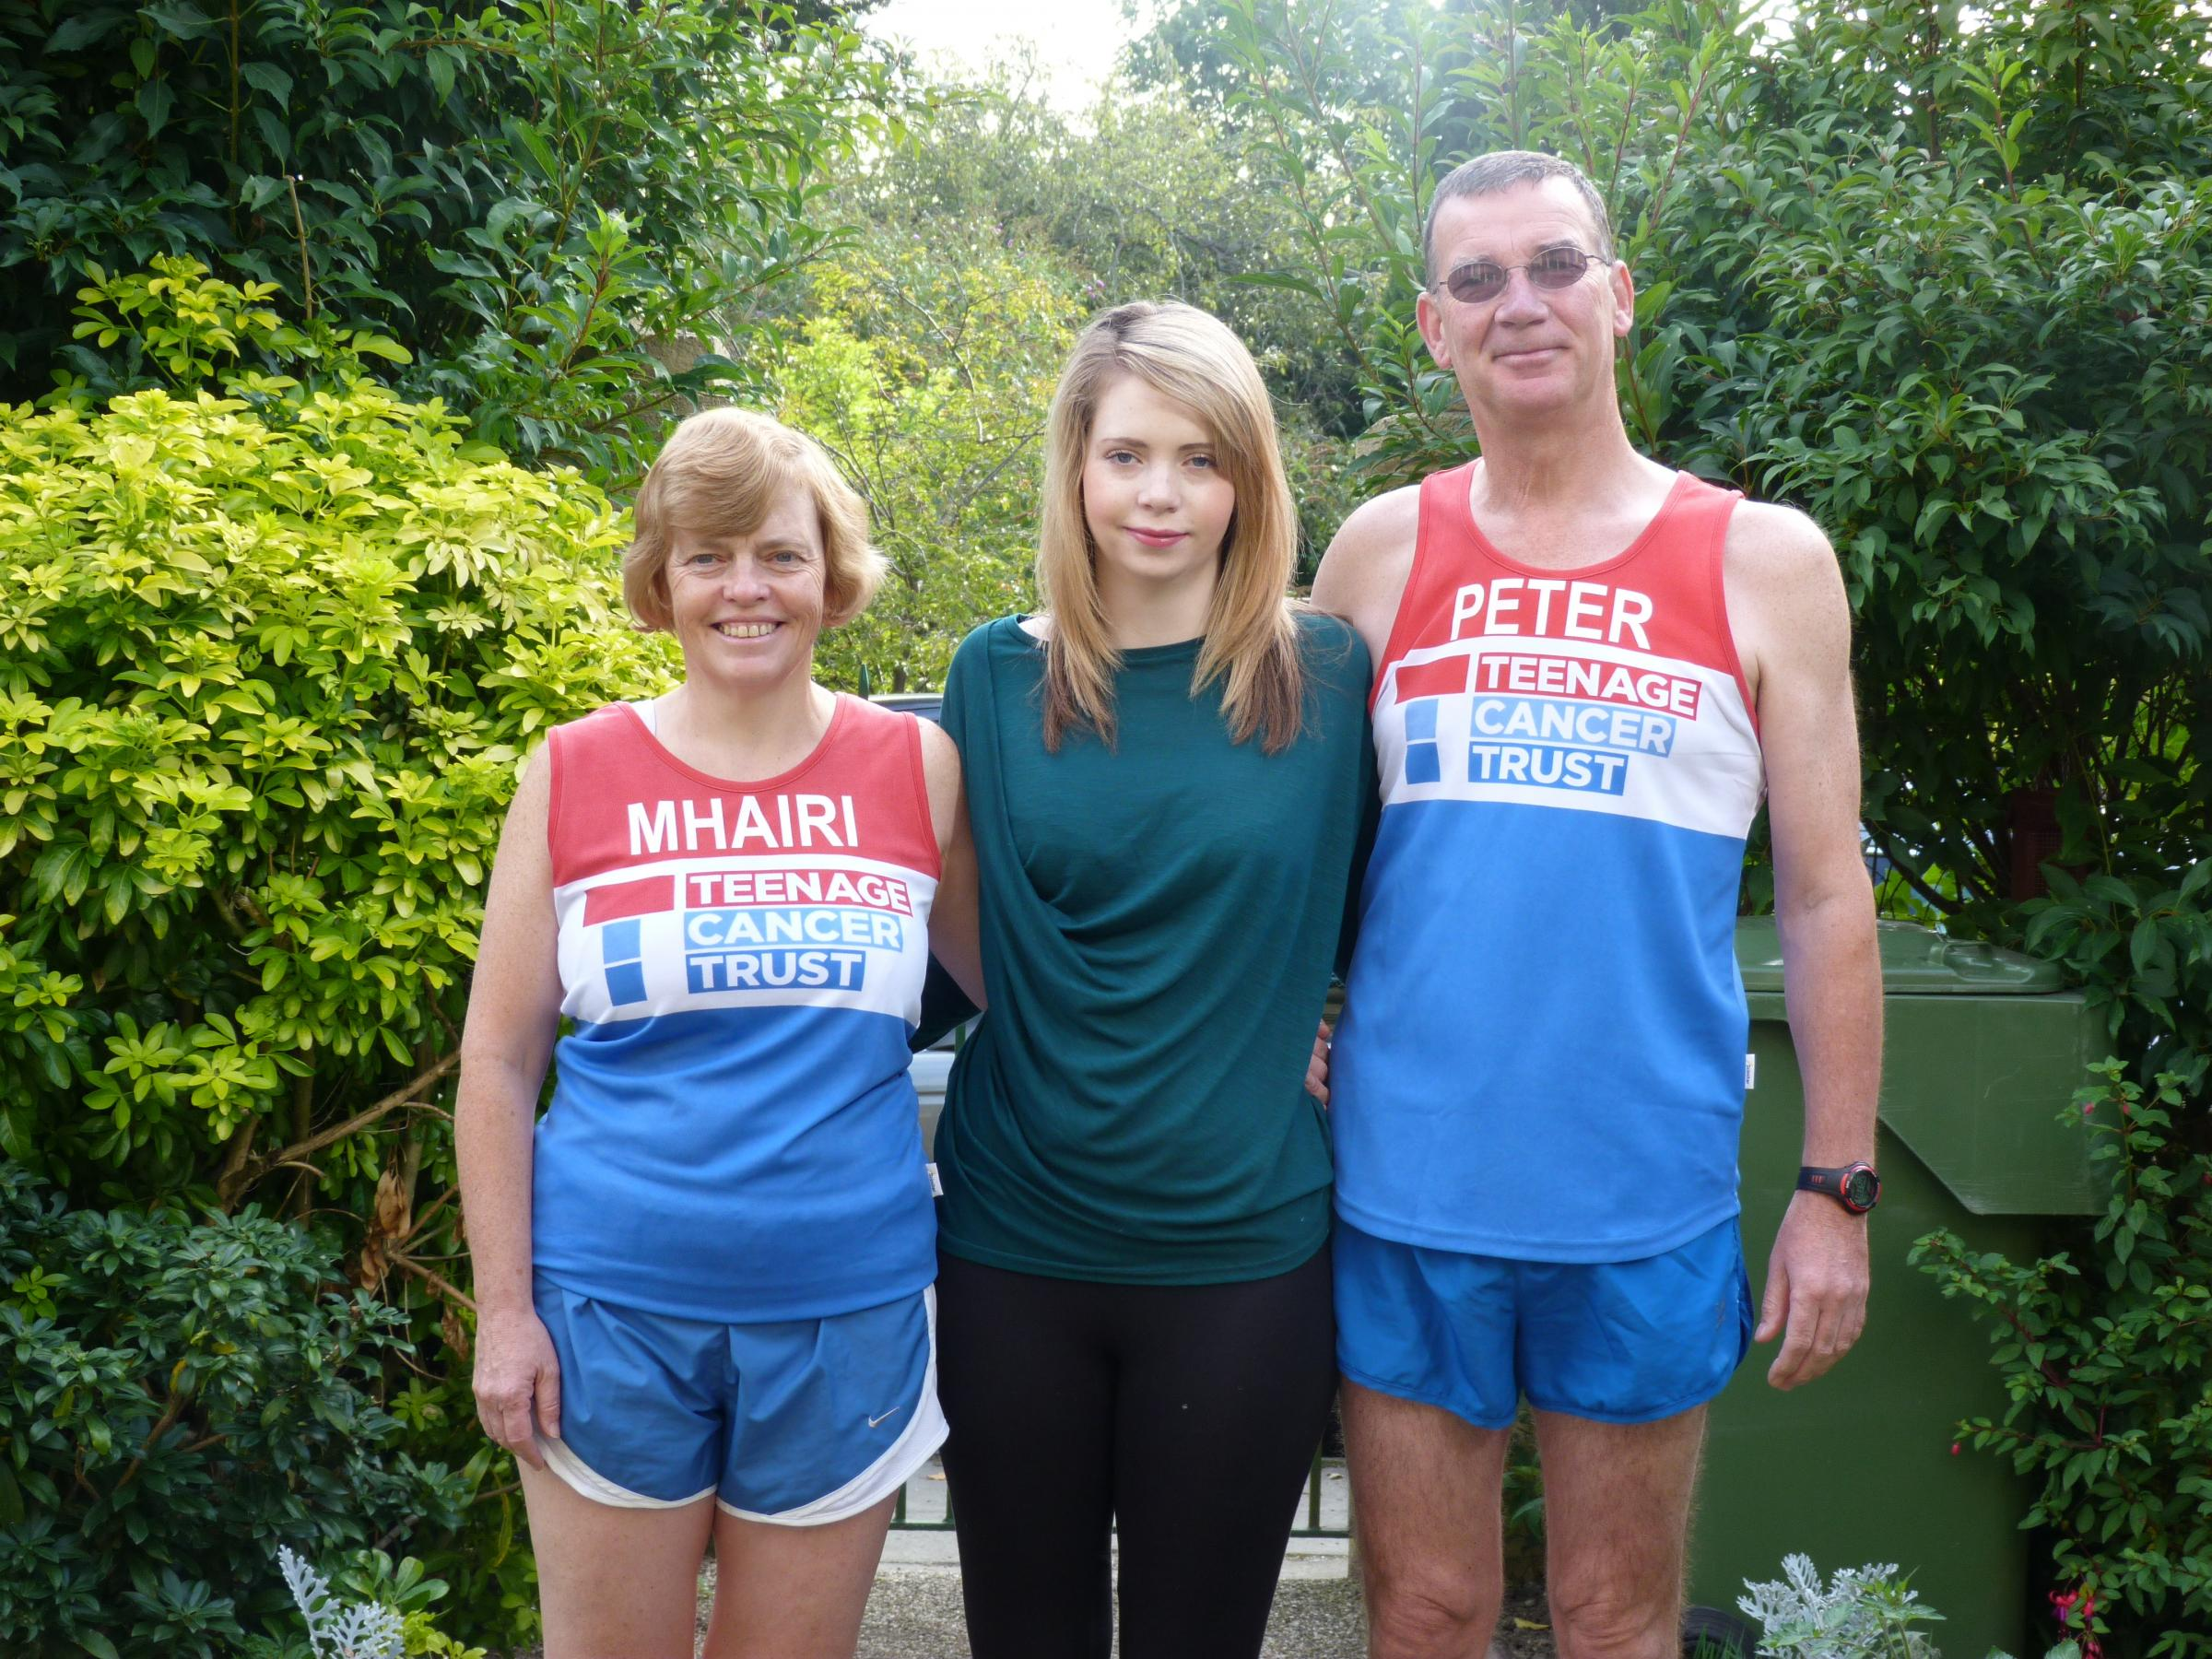 Mhairi and Peter McTiernan of Middlesbrough will spend their 23rd wedding anniversary taking part ion the Great North Run to raise money for the Teenage Cancer Trust which has treated their daughter Morag since she was diagnosed with breast cancer age 19